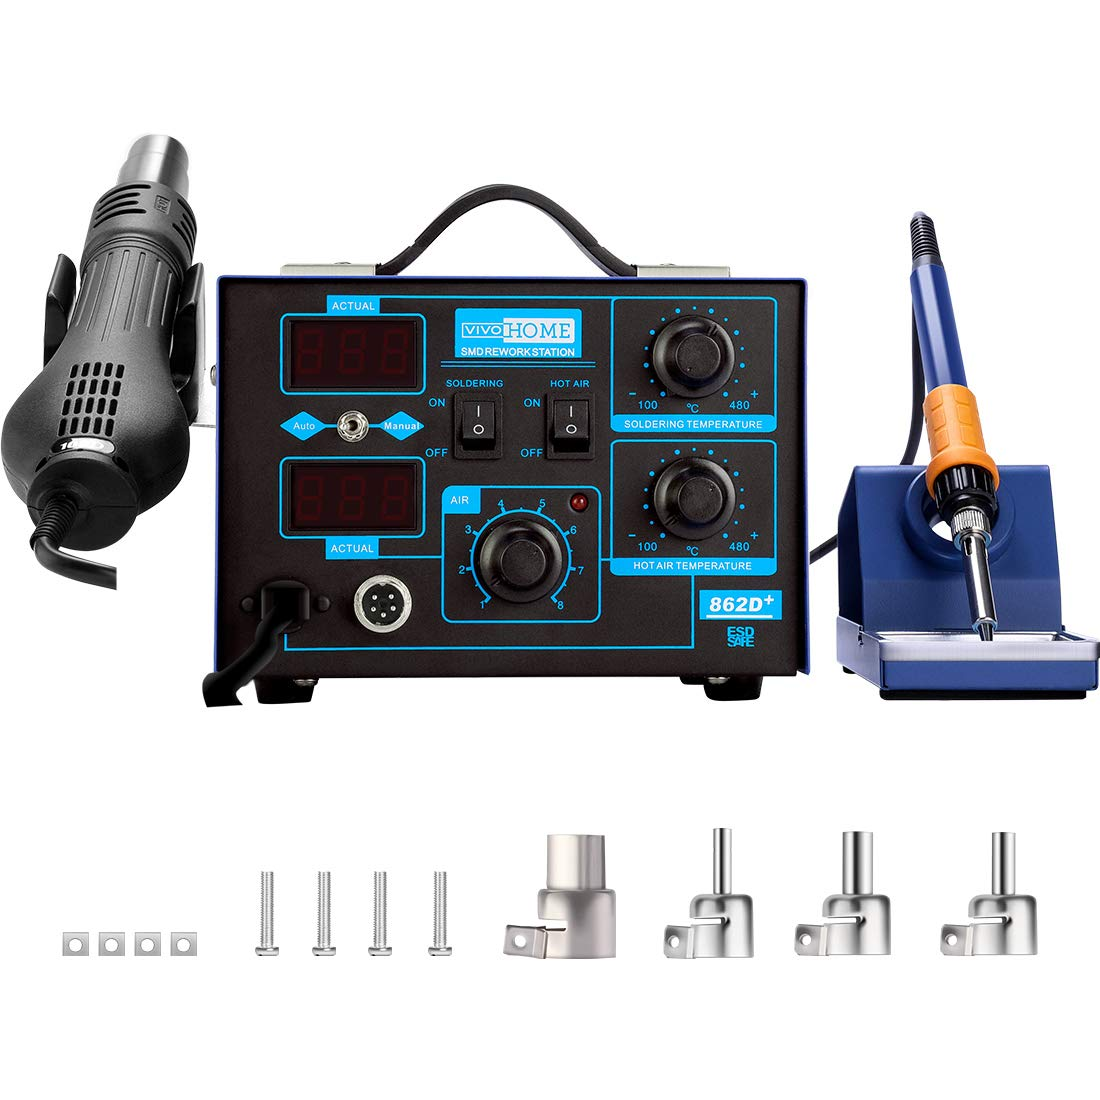 VIVOHOME 2 in 1 862D+ SMD Soldering Iron Hot Air Heat Gun Rework Station with 4 Nozzles 110V